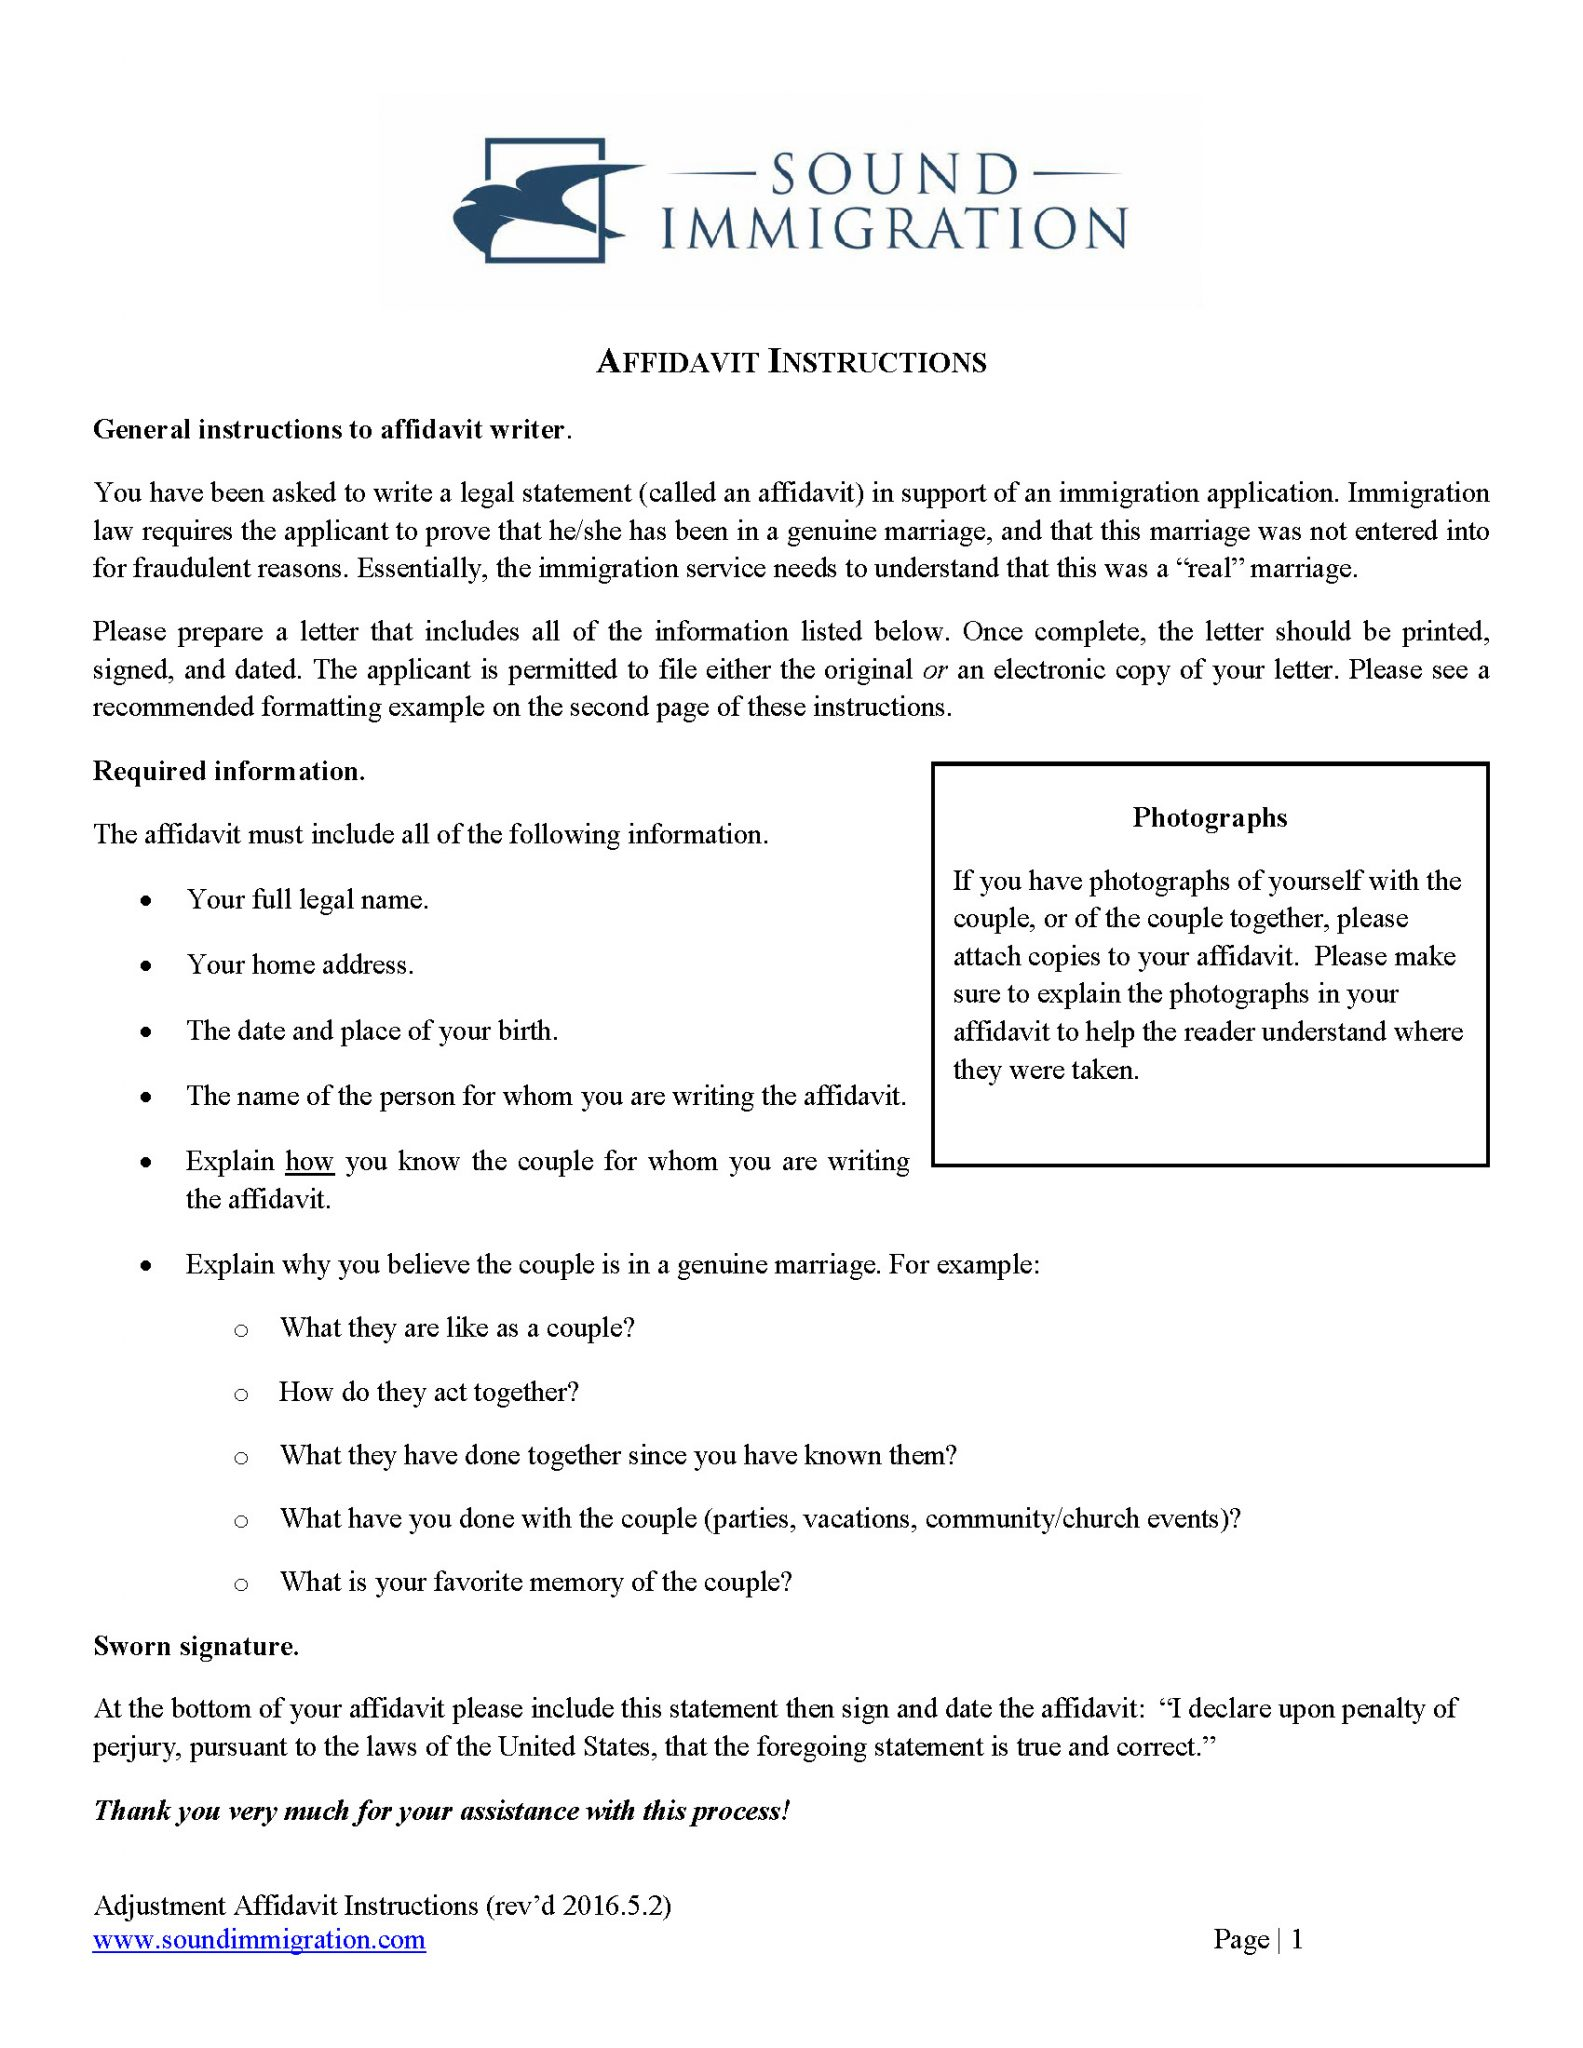 Sample of affidavit support for marriage best of immigration cover letter for i sample choice image intended affidavit of sample letter personal knowledge marriage relationship copy printable affidavit of affidavit of altavistaventures Gallery